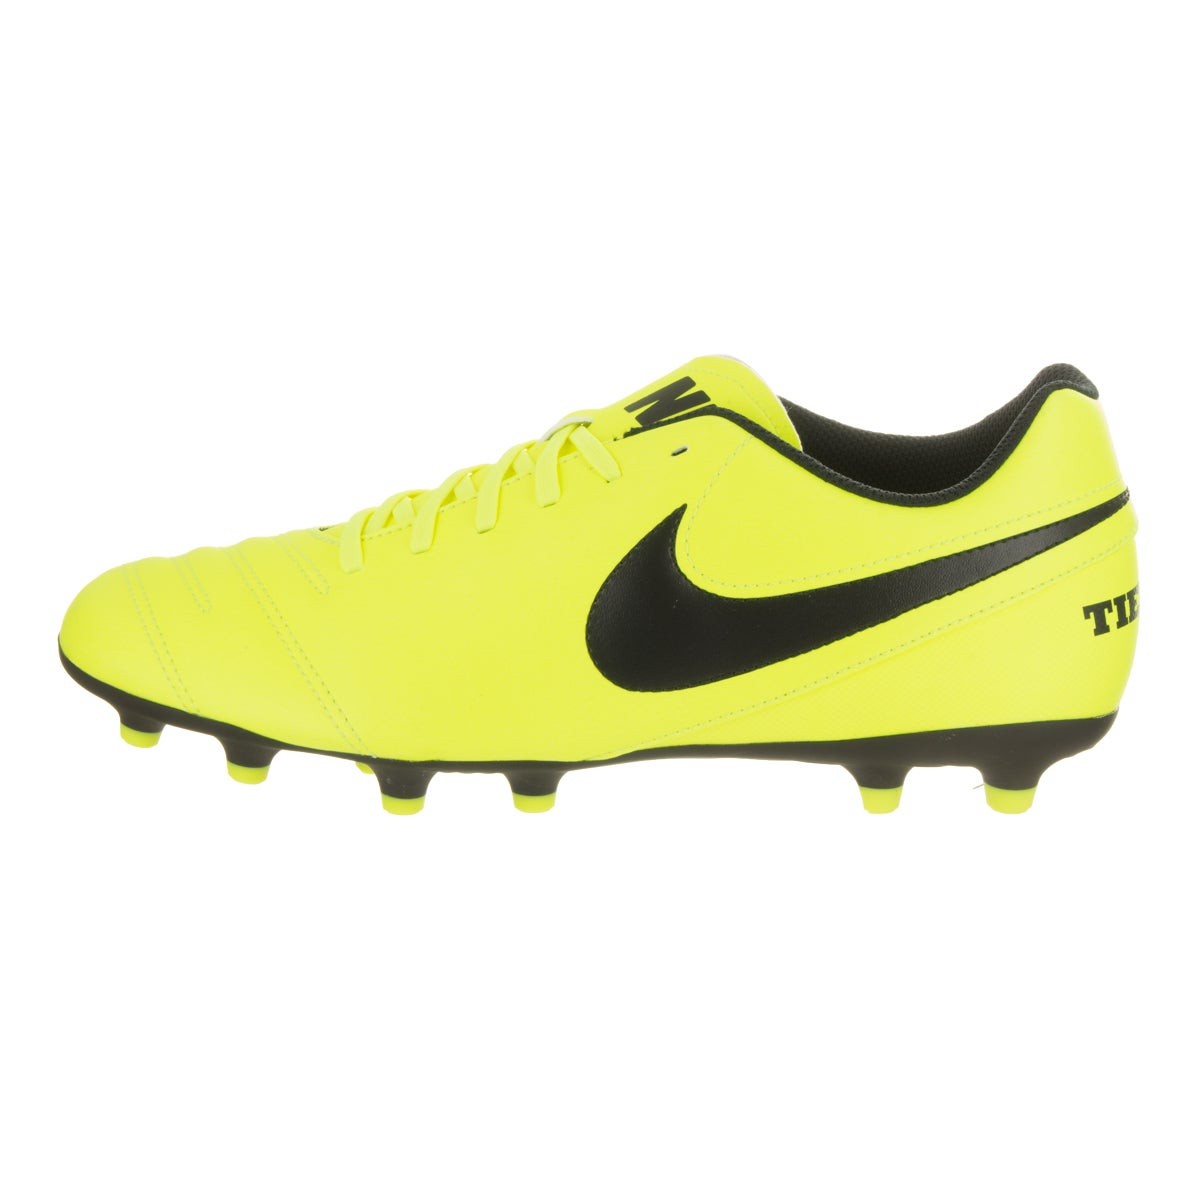 3f530d8e7 Shop Nike Men's Tiempo Rio III Fg Soccer Cleat - Free Shipping Today -  Overstock - 15858499